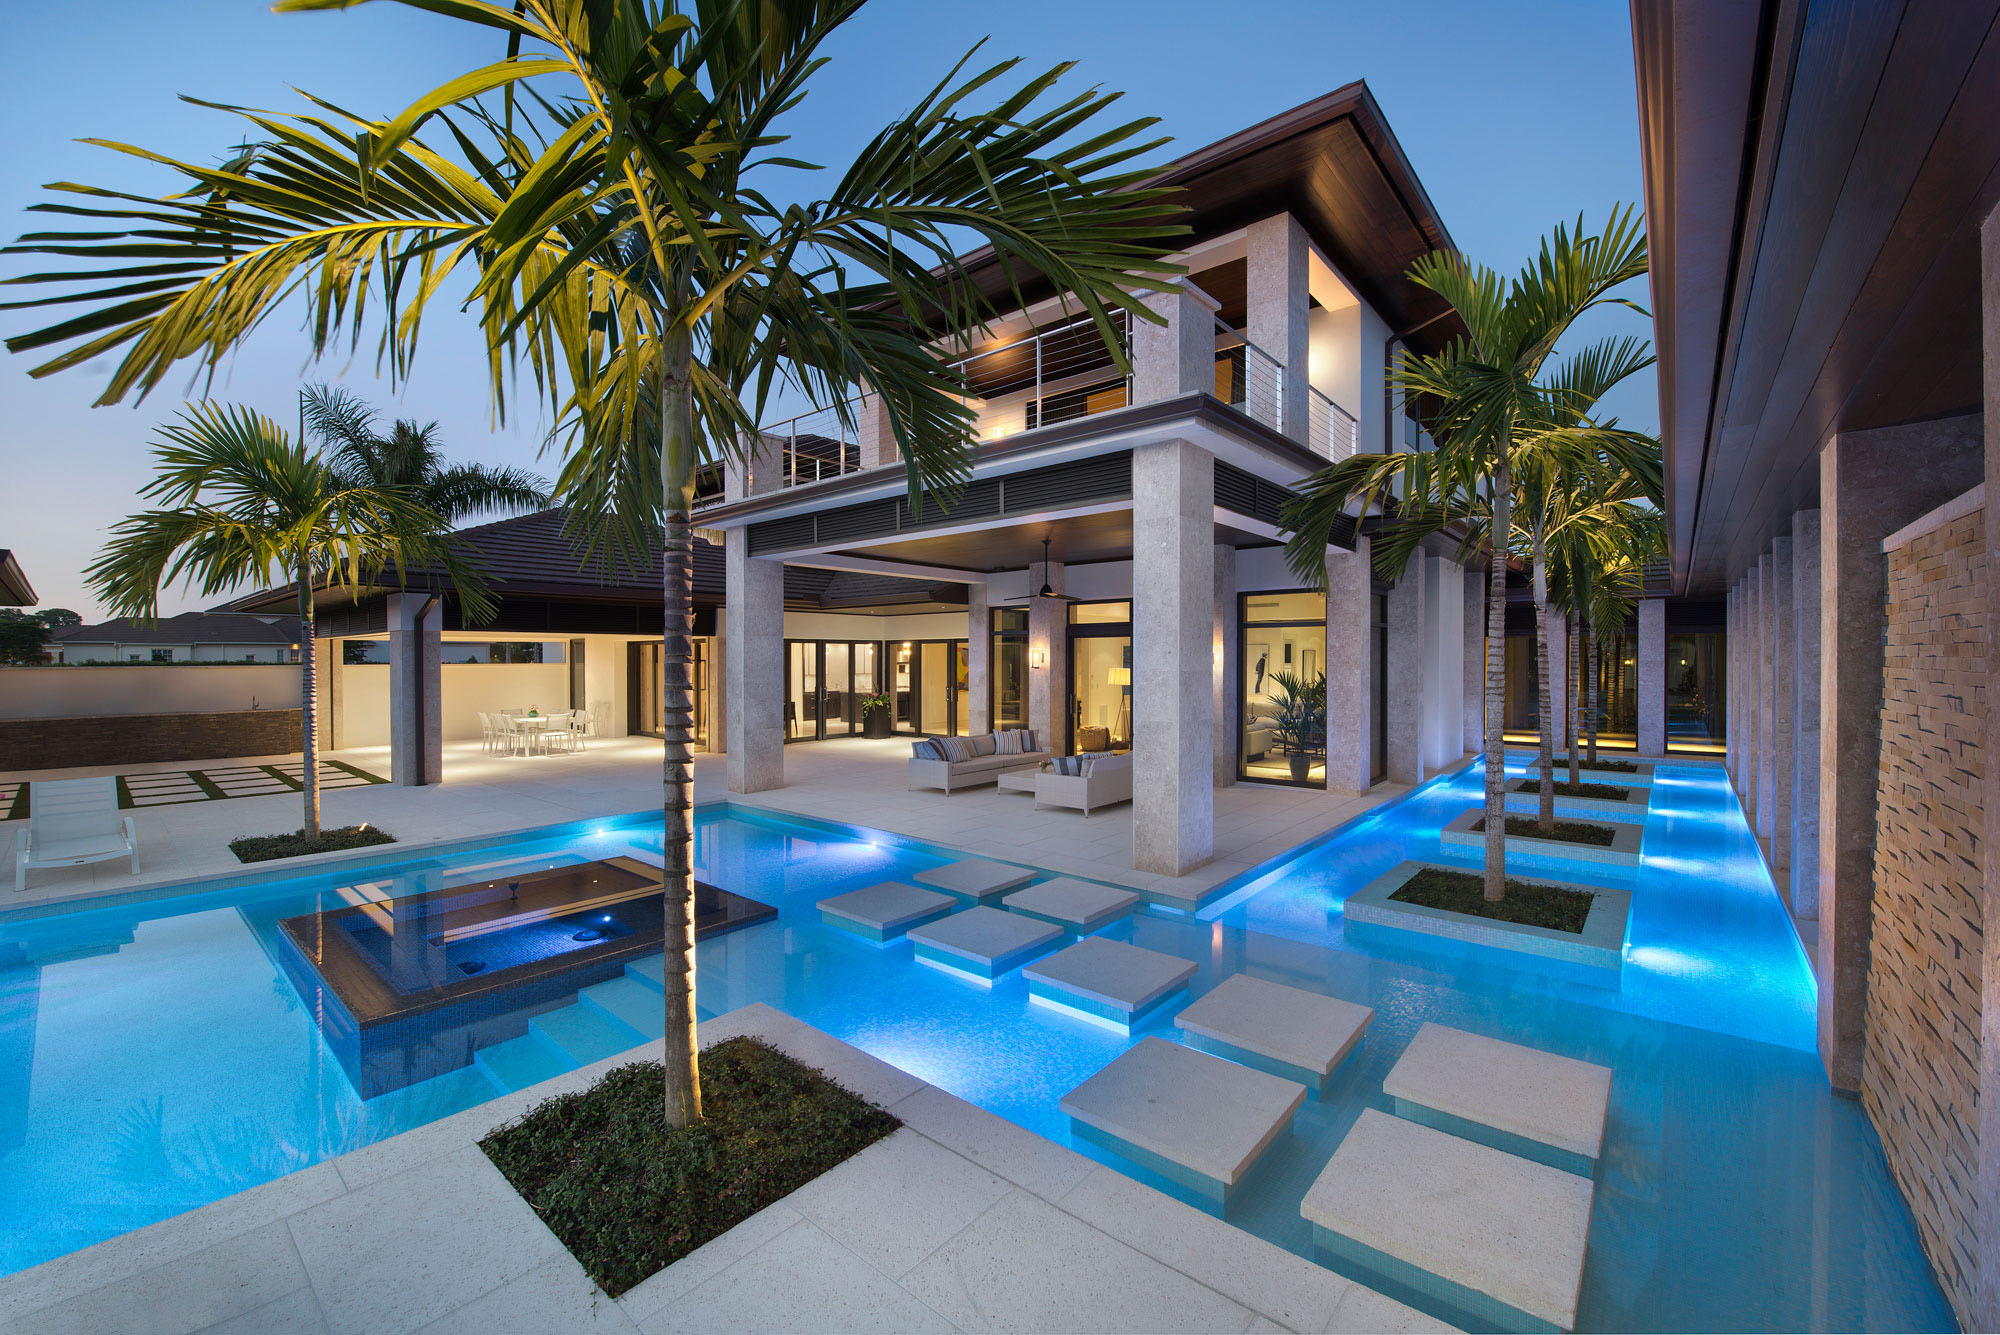 Custom dream home in florida with elegant swimming pool Architect florida